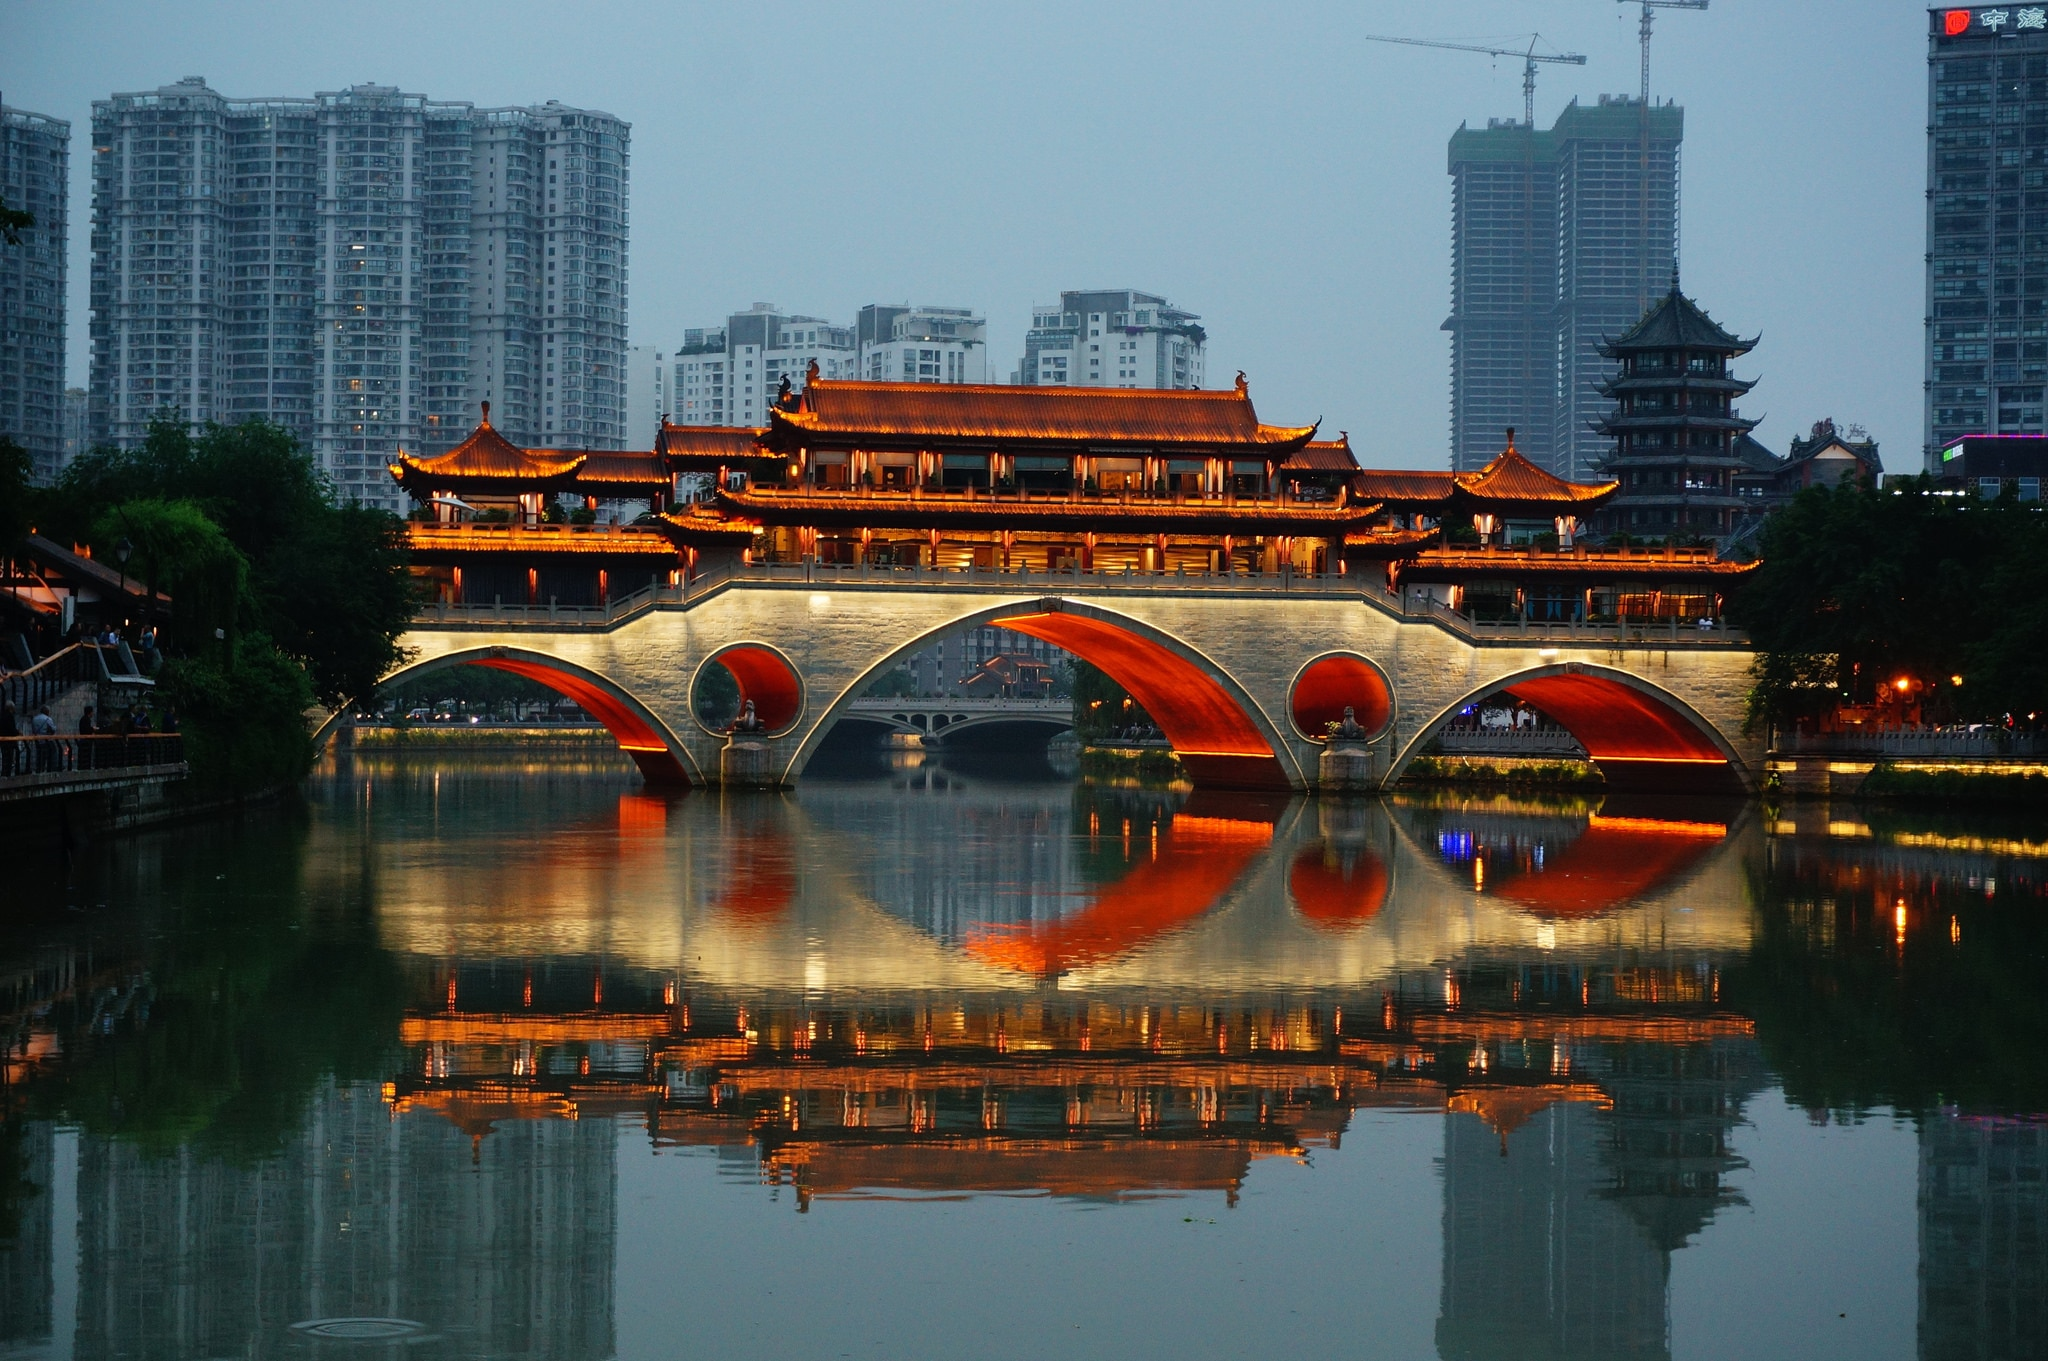 Chengdu: Explore the Center of Ancient Chinese Civilization